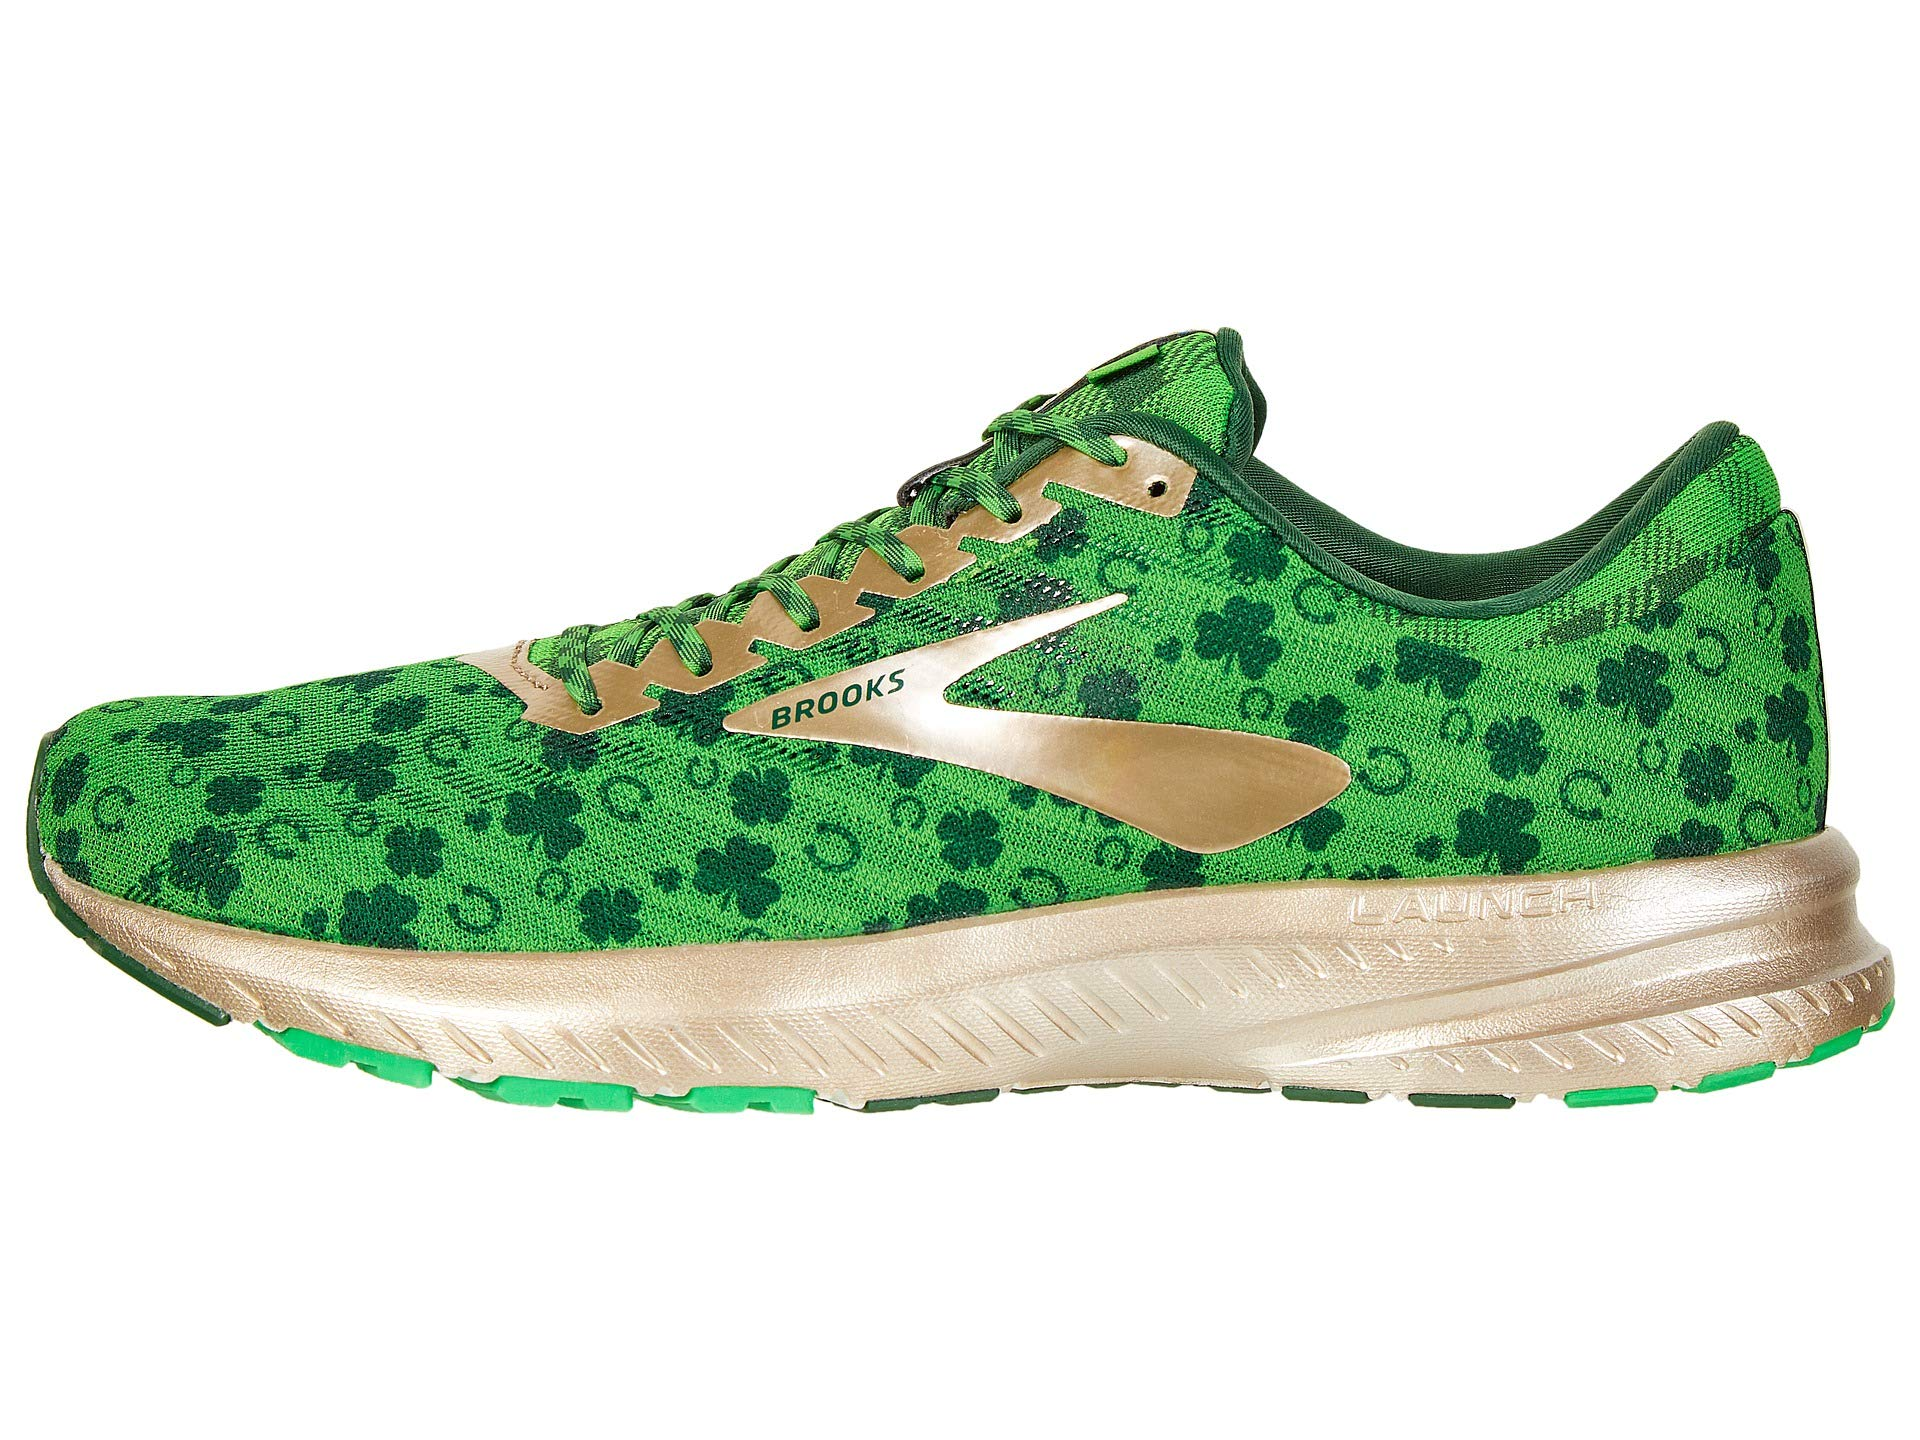 Brooks Launch 6 Clover Sneakers